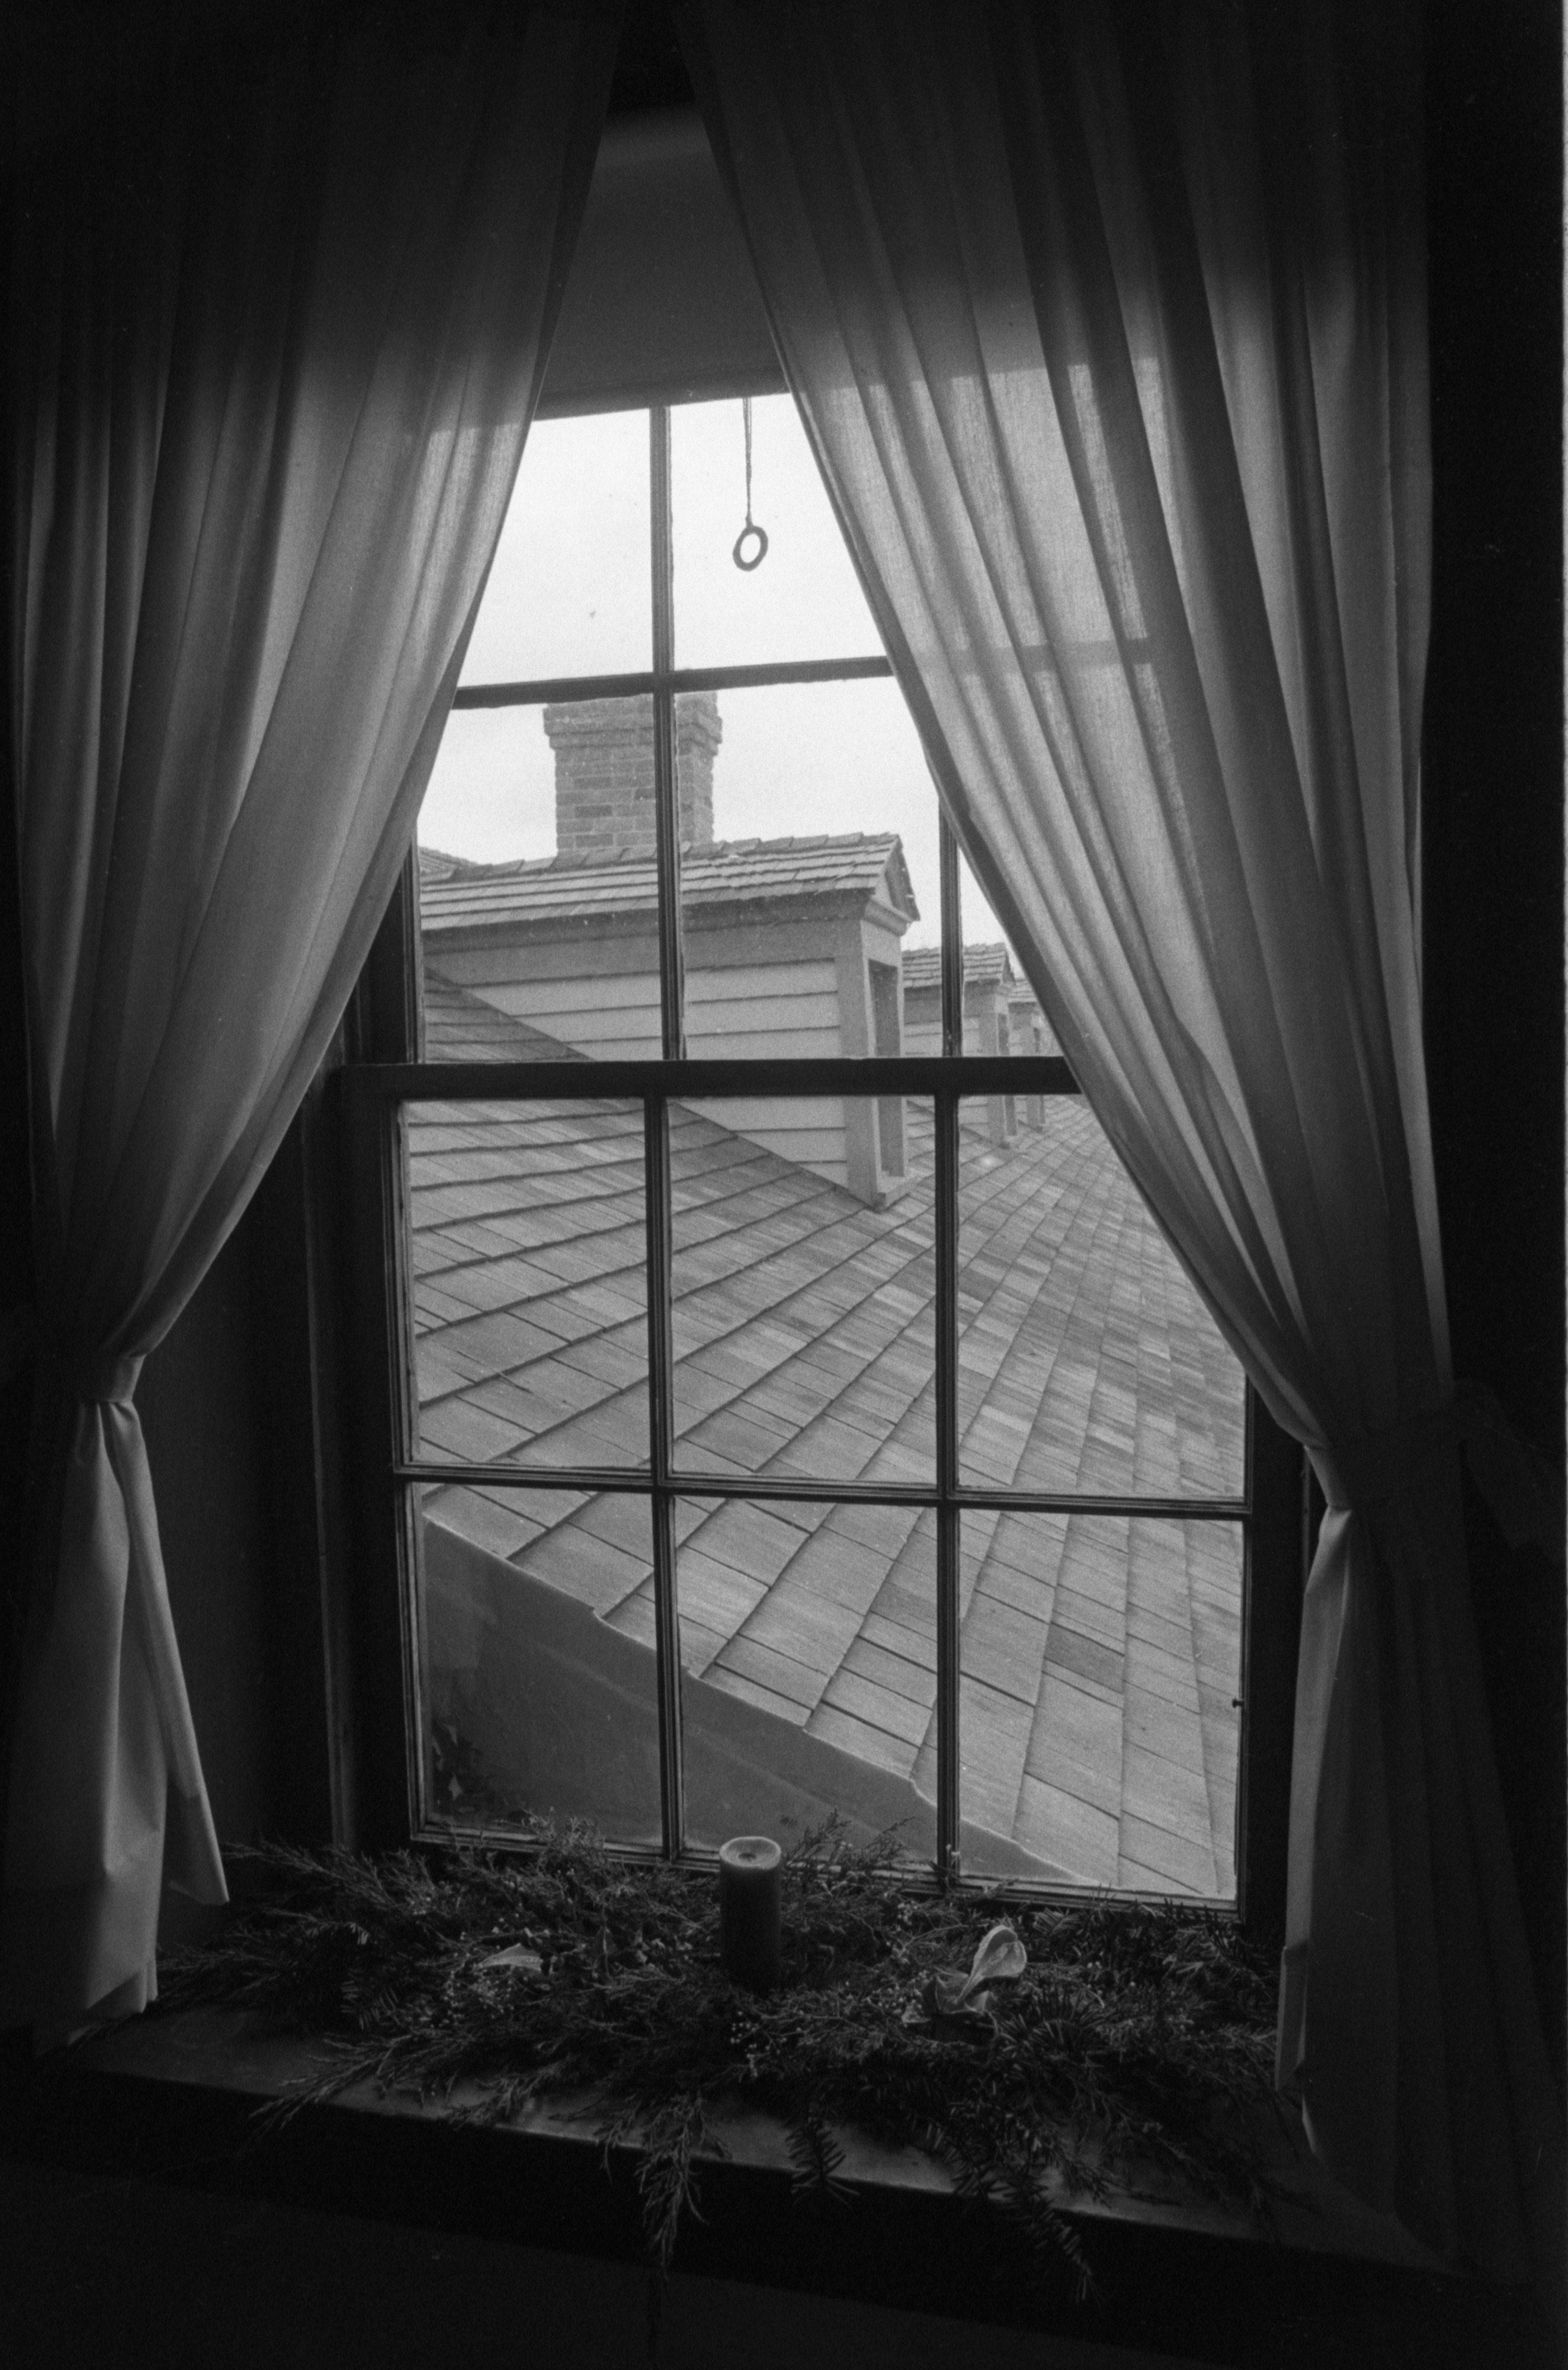 Window Sill Decorated For Christmas At Cobblestone Farmhouse, December 22, 1980 image